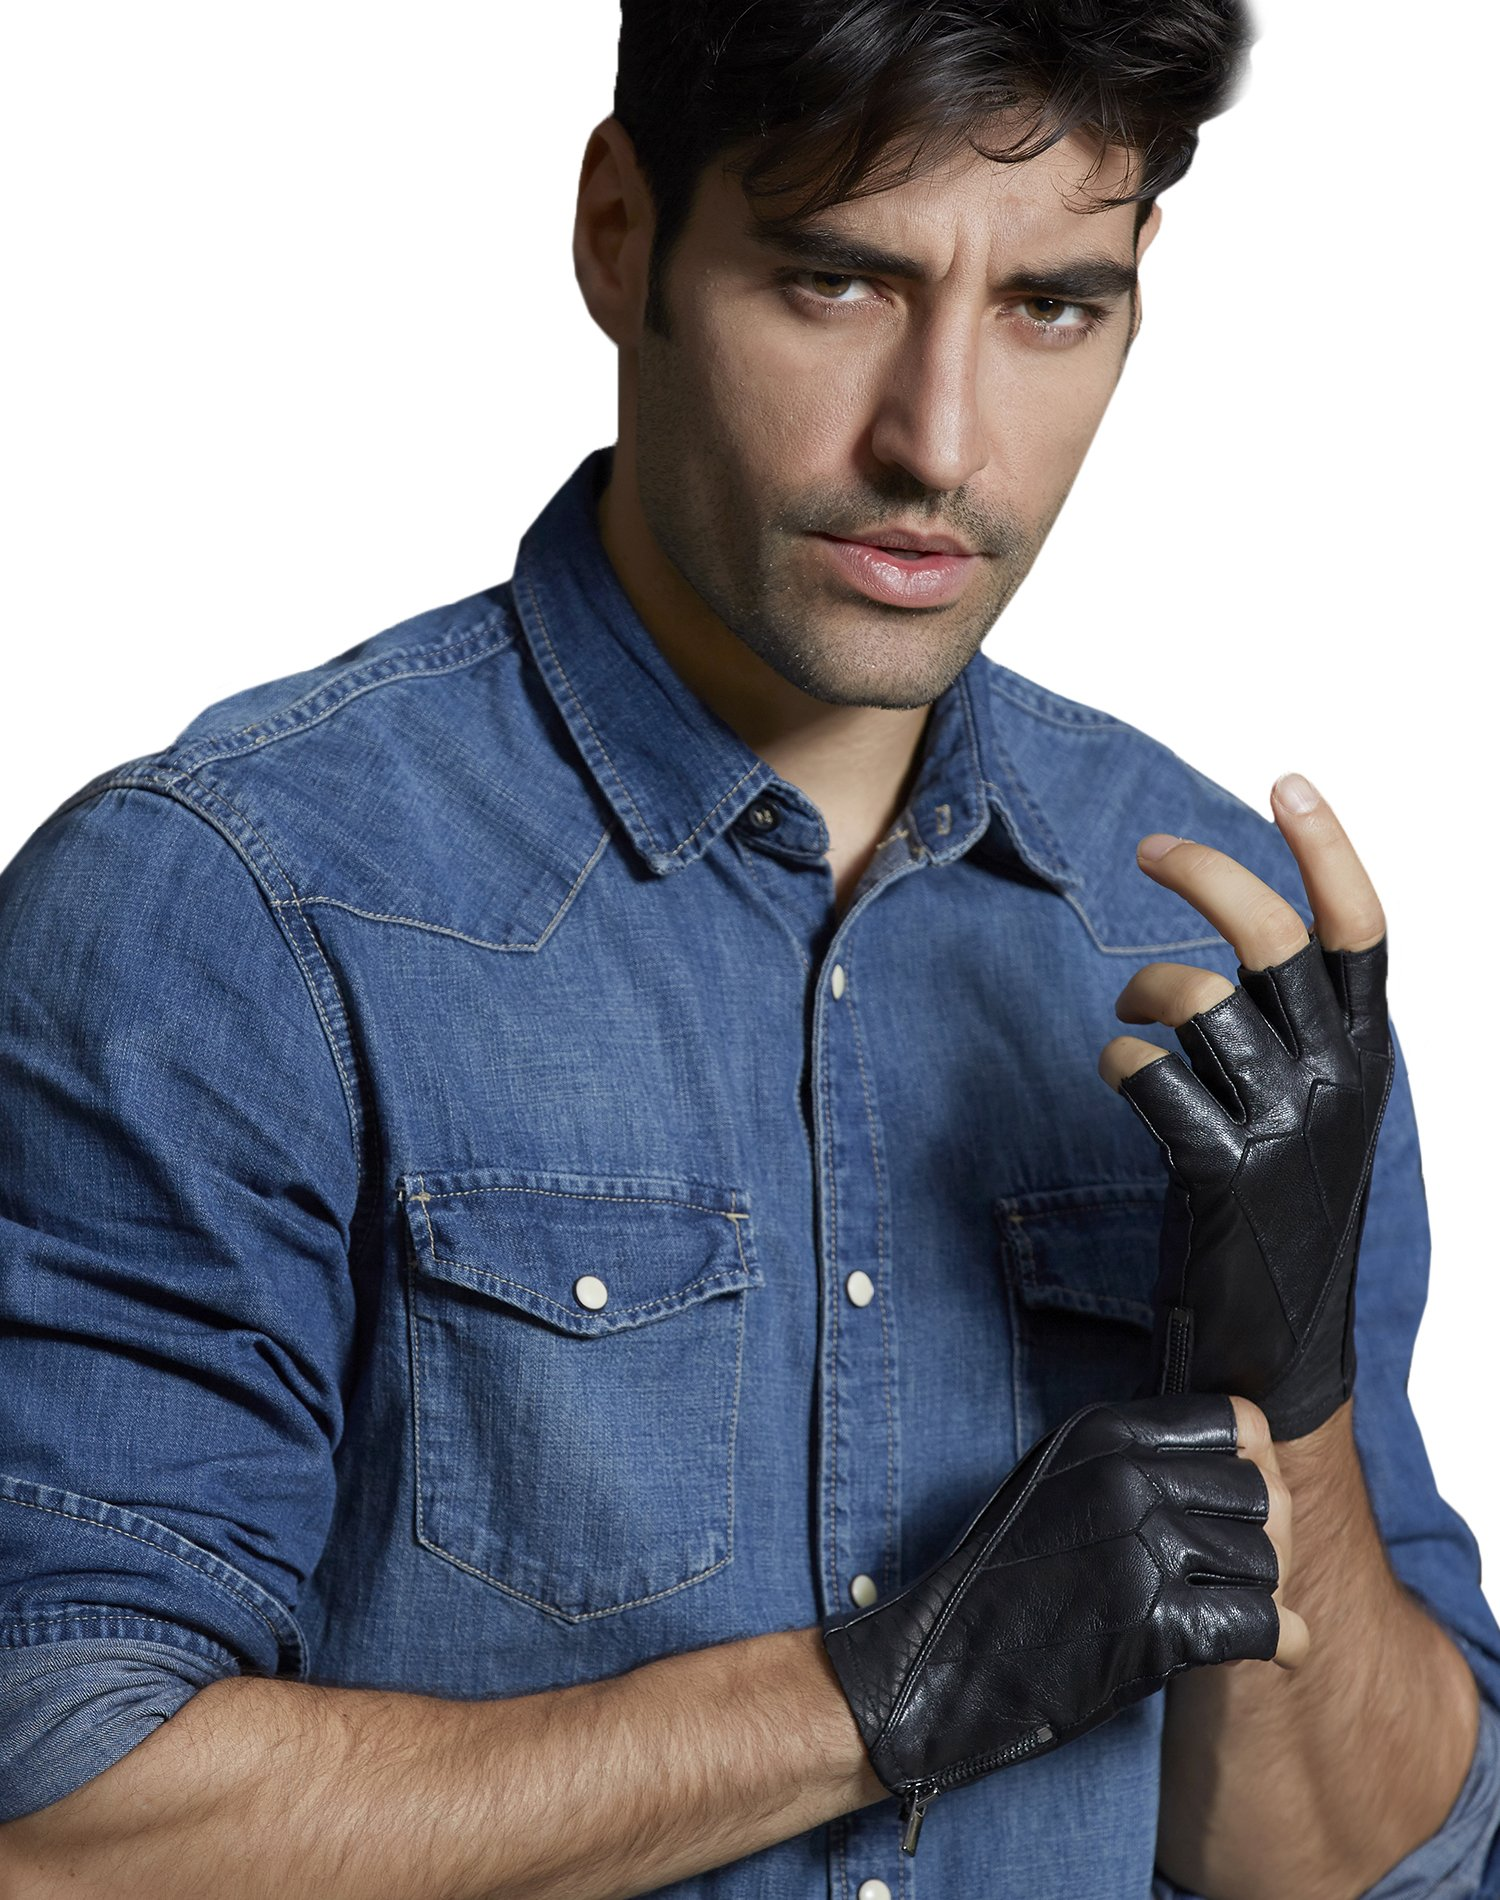 Fioretto Cool Gifts Mens Leather Gloves Fingerless Driving Motorcycle Genuine Leather Gloves Sport Half Finger Men's Leather Gloves Unlined Mens gifts Black S/M